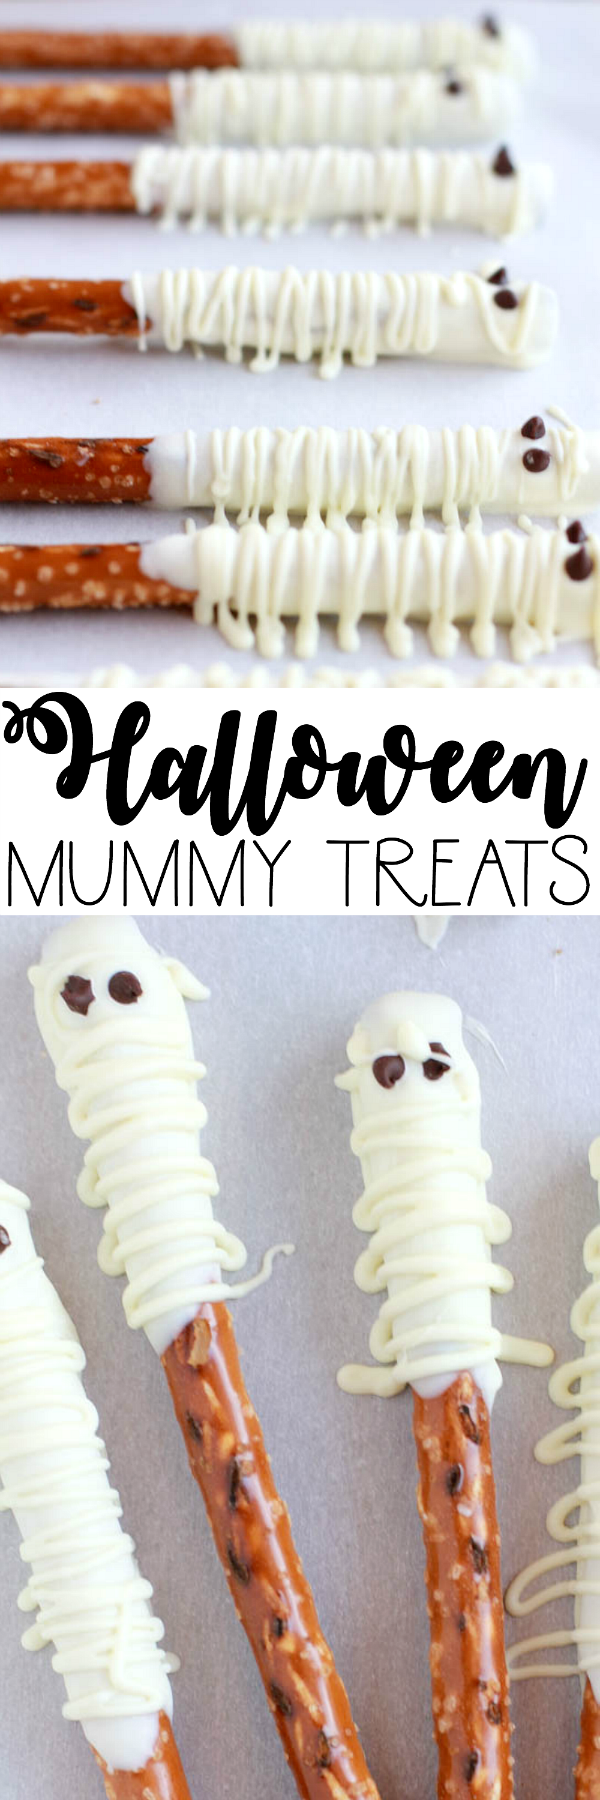 halloween mummy treats using pretzel rods